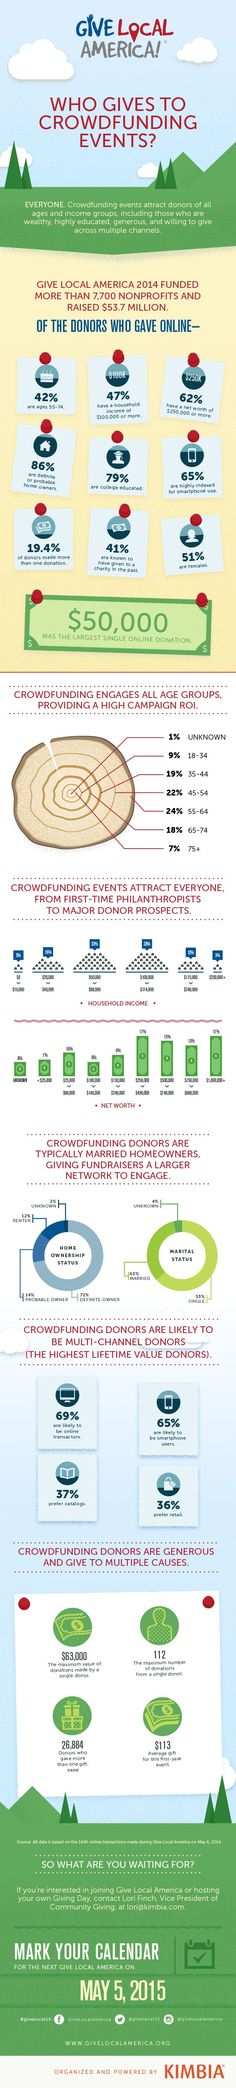 42% of Donors to Crowdfunding Campaigns Are Ages55-74   Online Fundraising, Advocacy, and Social Media   frogloop.com